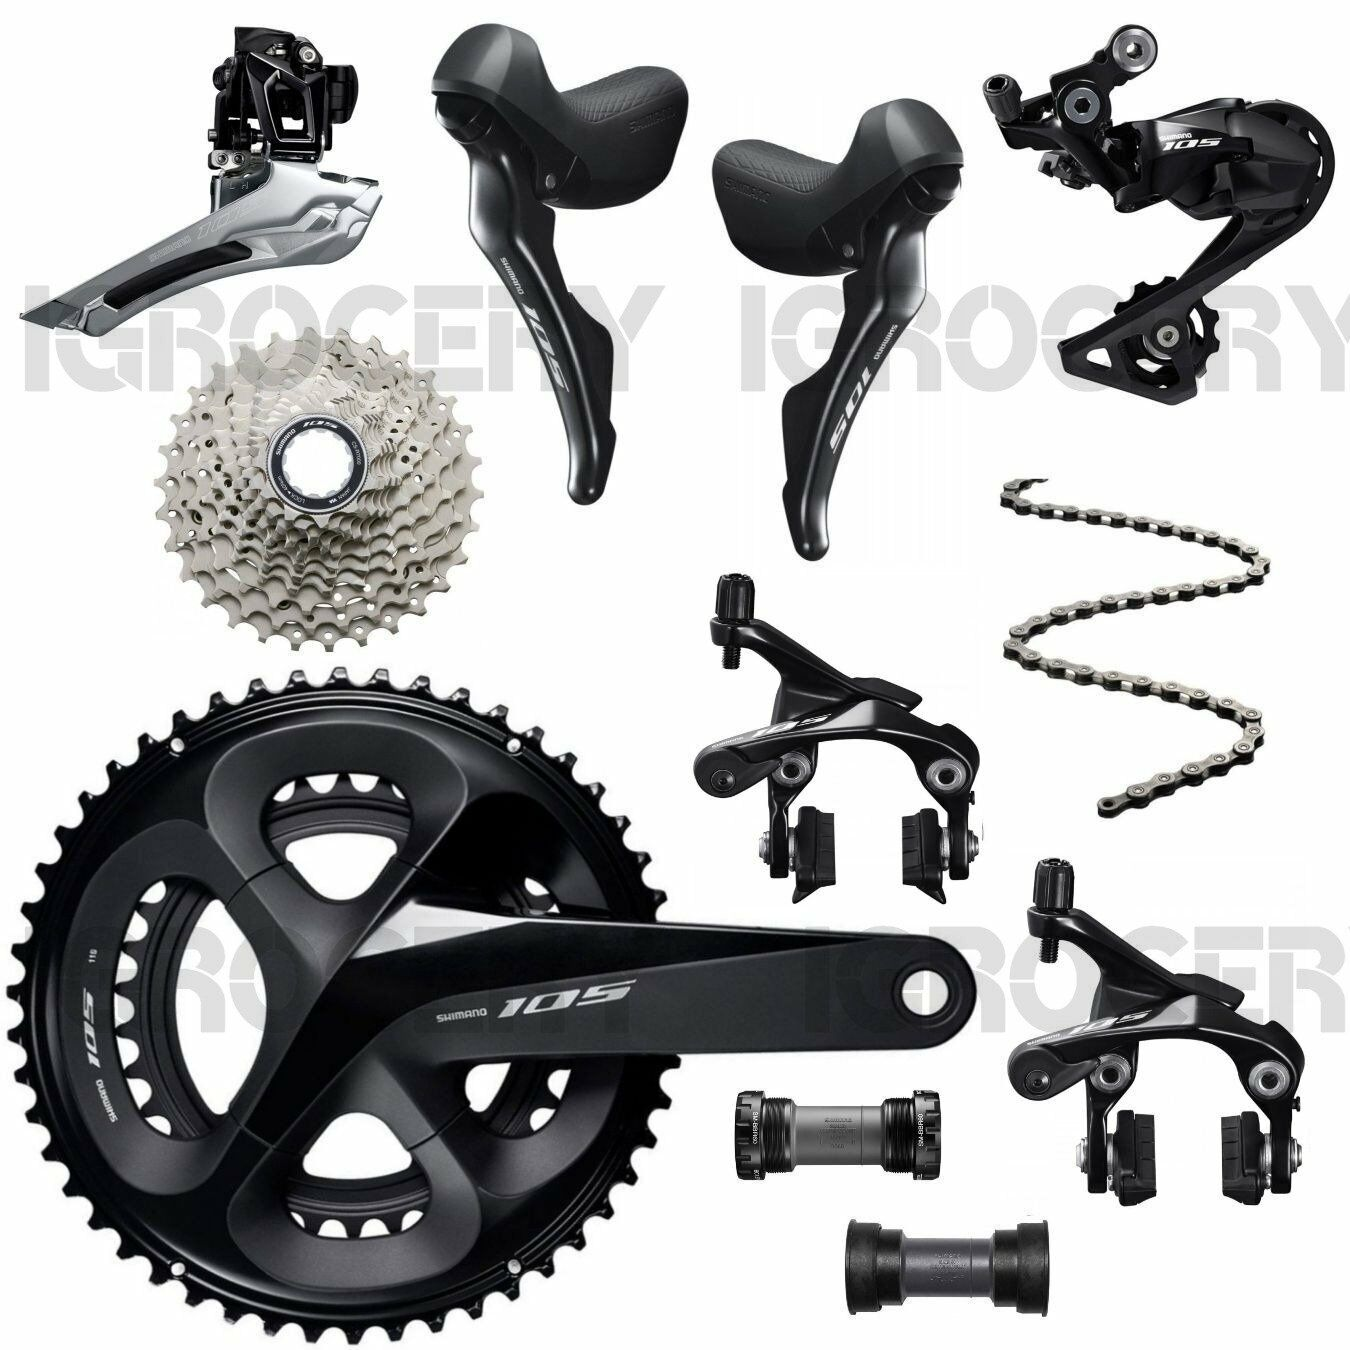 8PCS Shimano 105 R7000 Road Bike Full Groupset 11 Speed 53 39 - SS